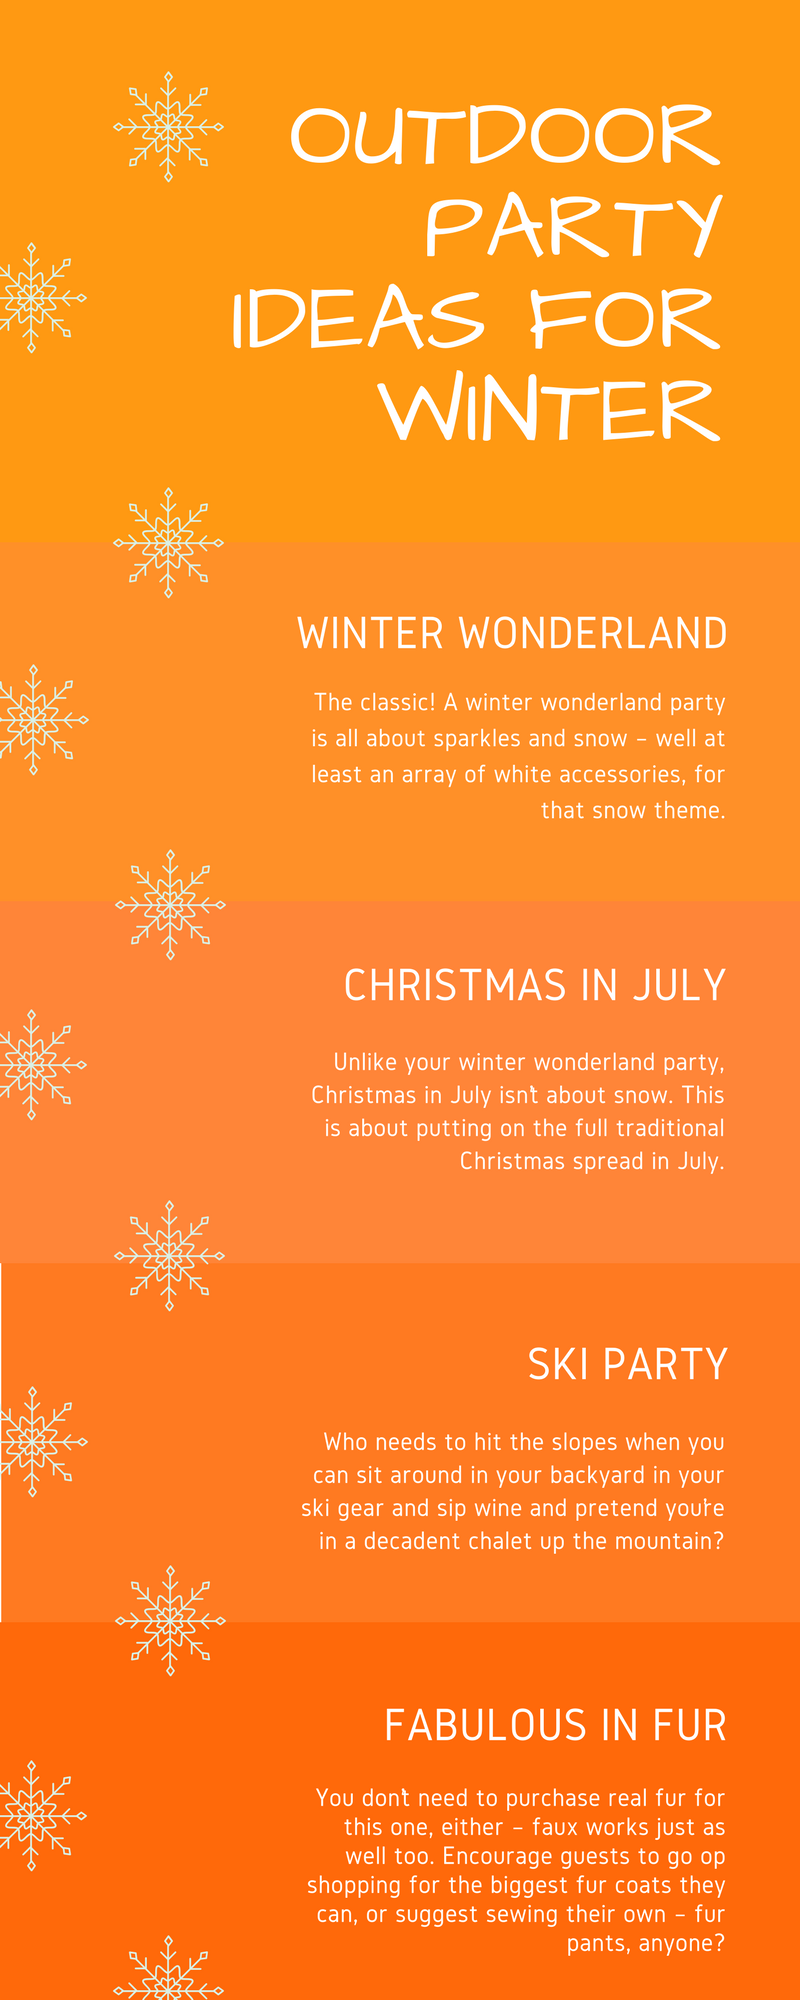 Outdoor Party Ideas for Winter